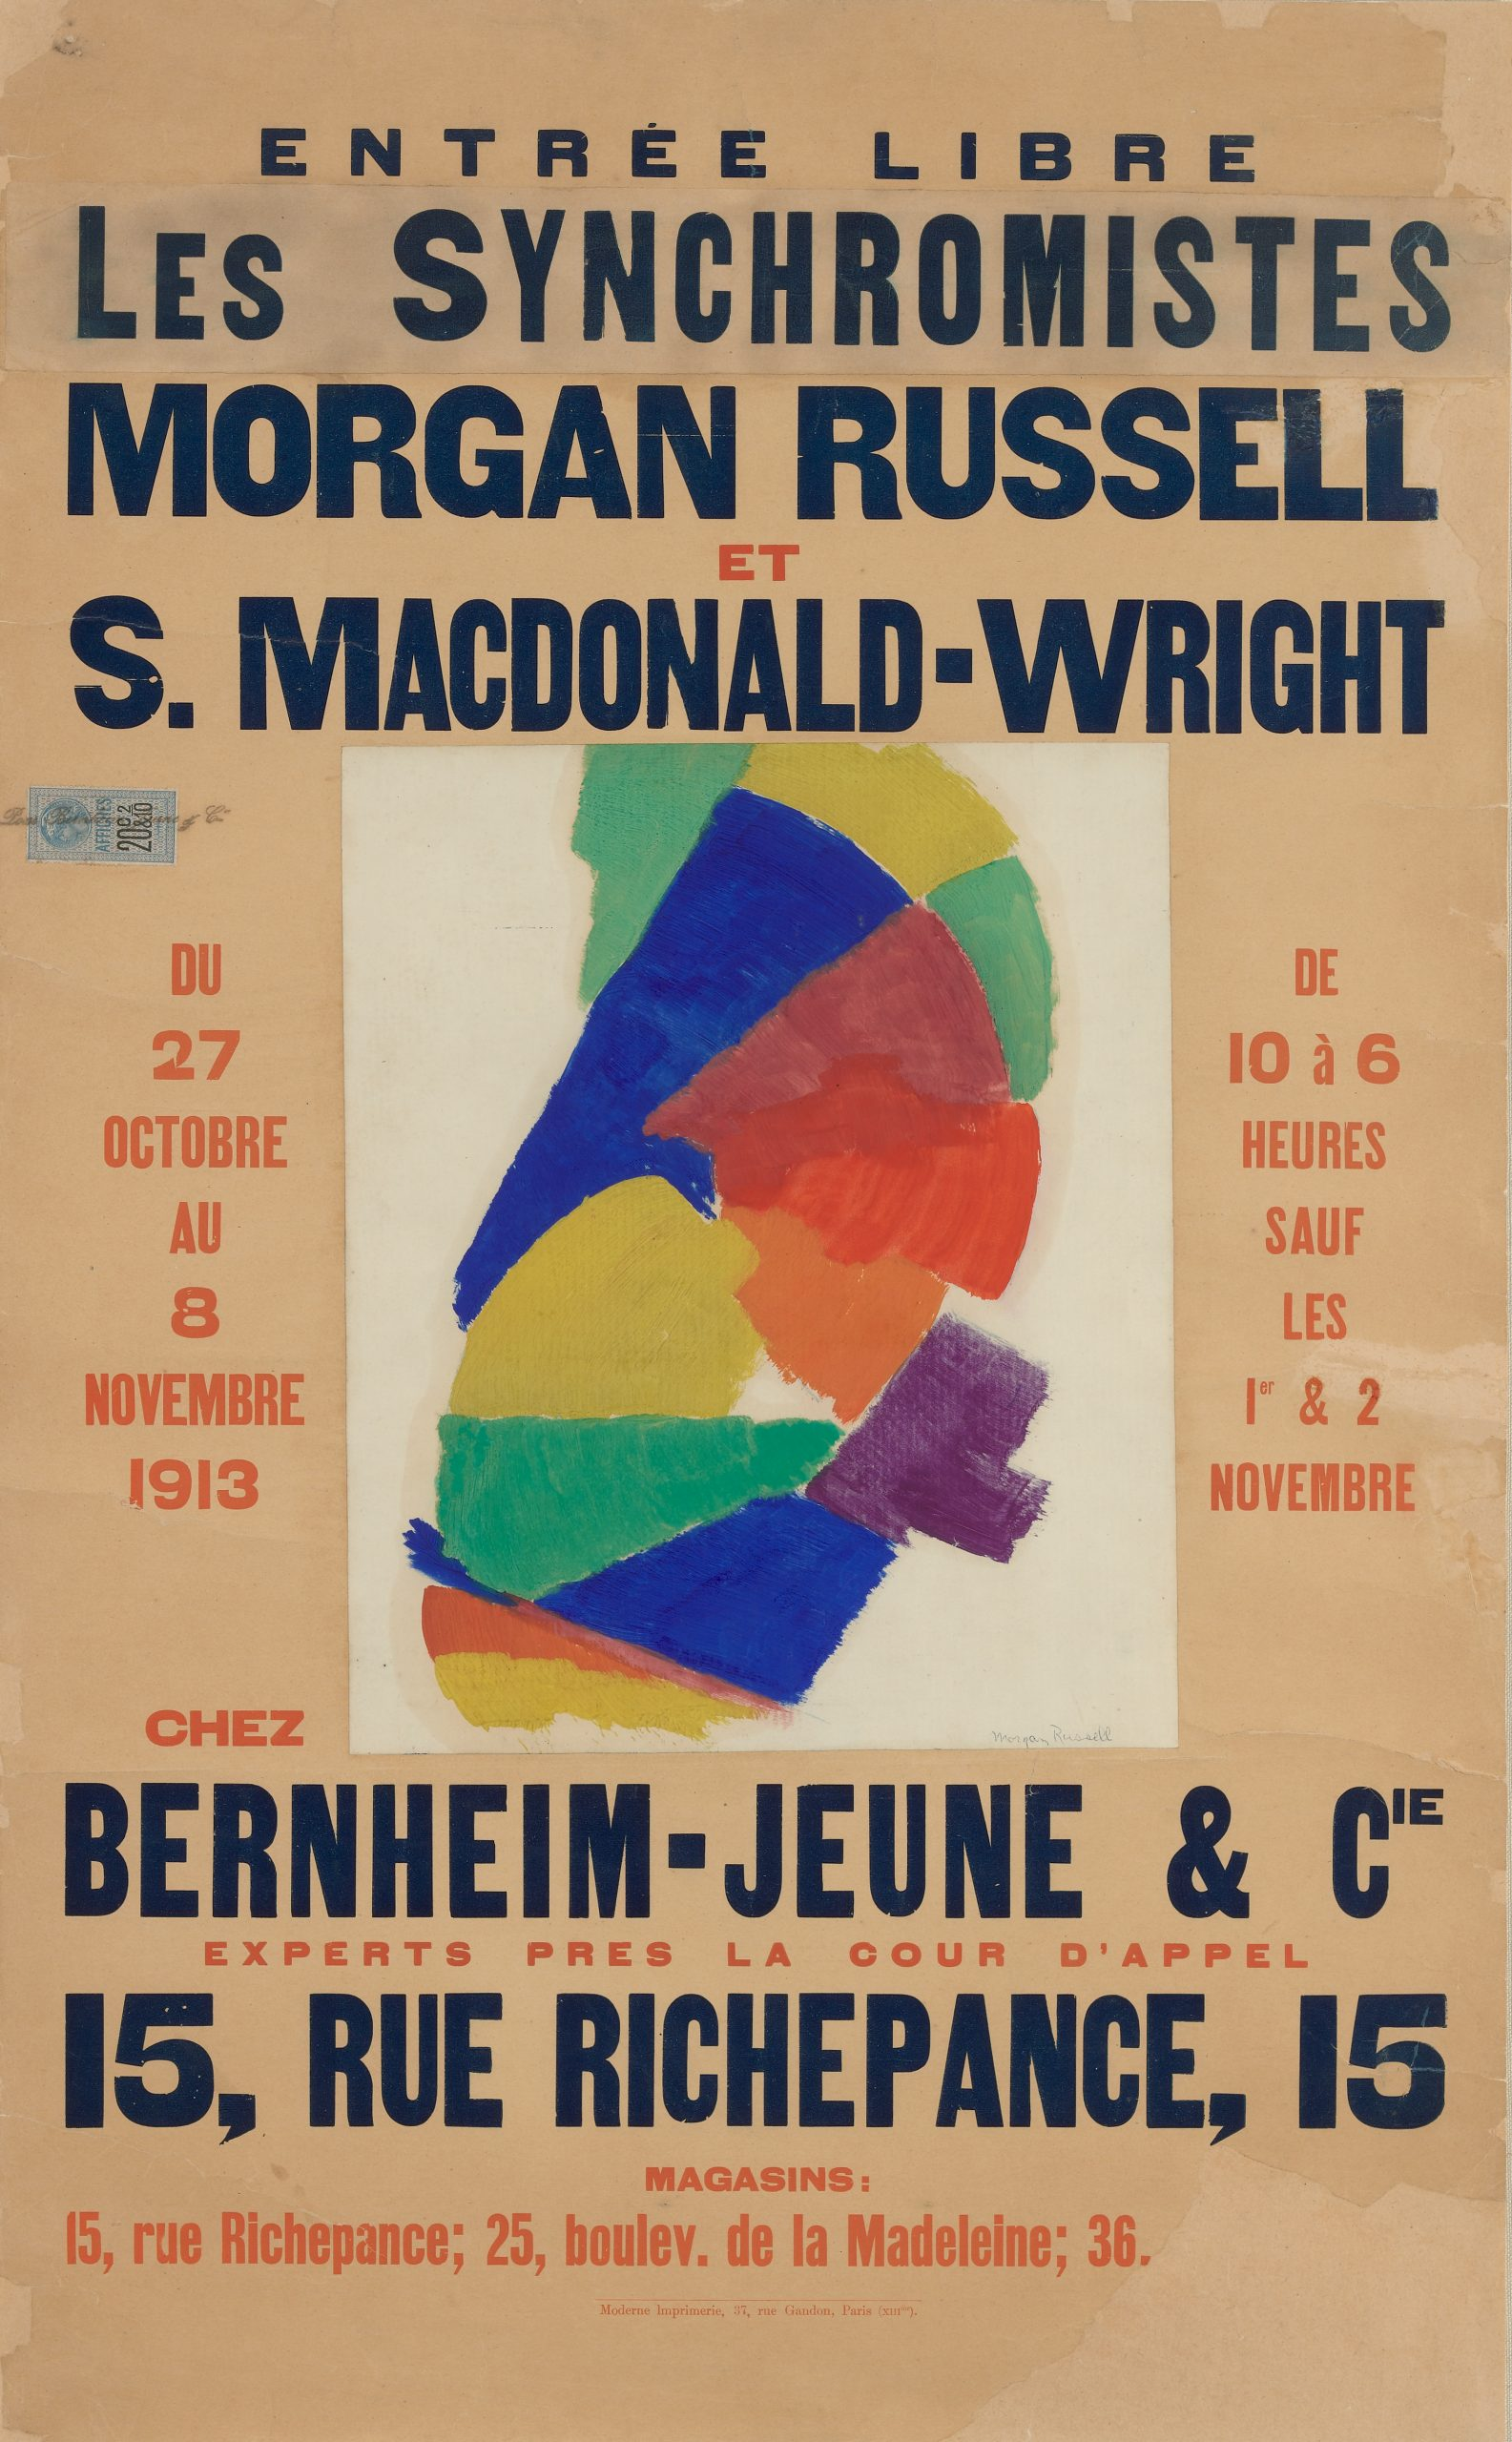 A French poster promoting the artists' exhibition with a formation of colors in the center.